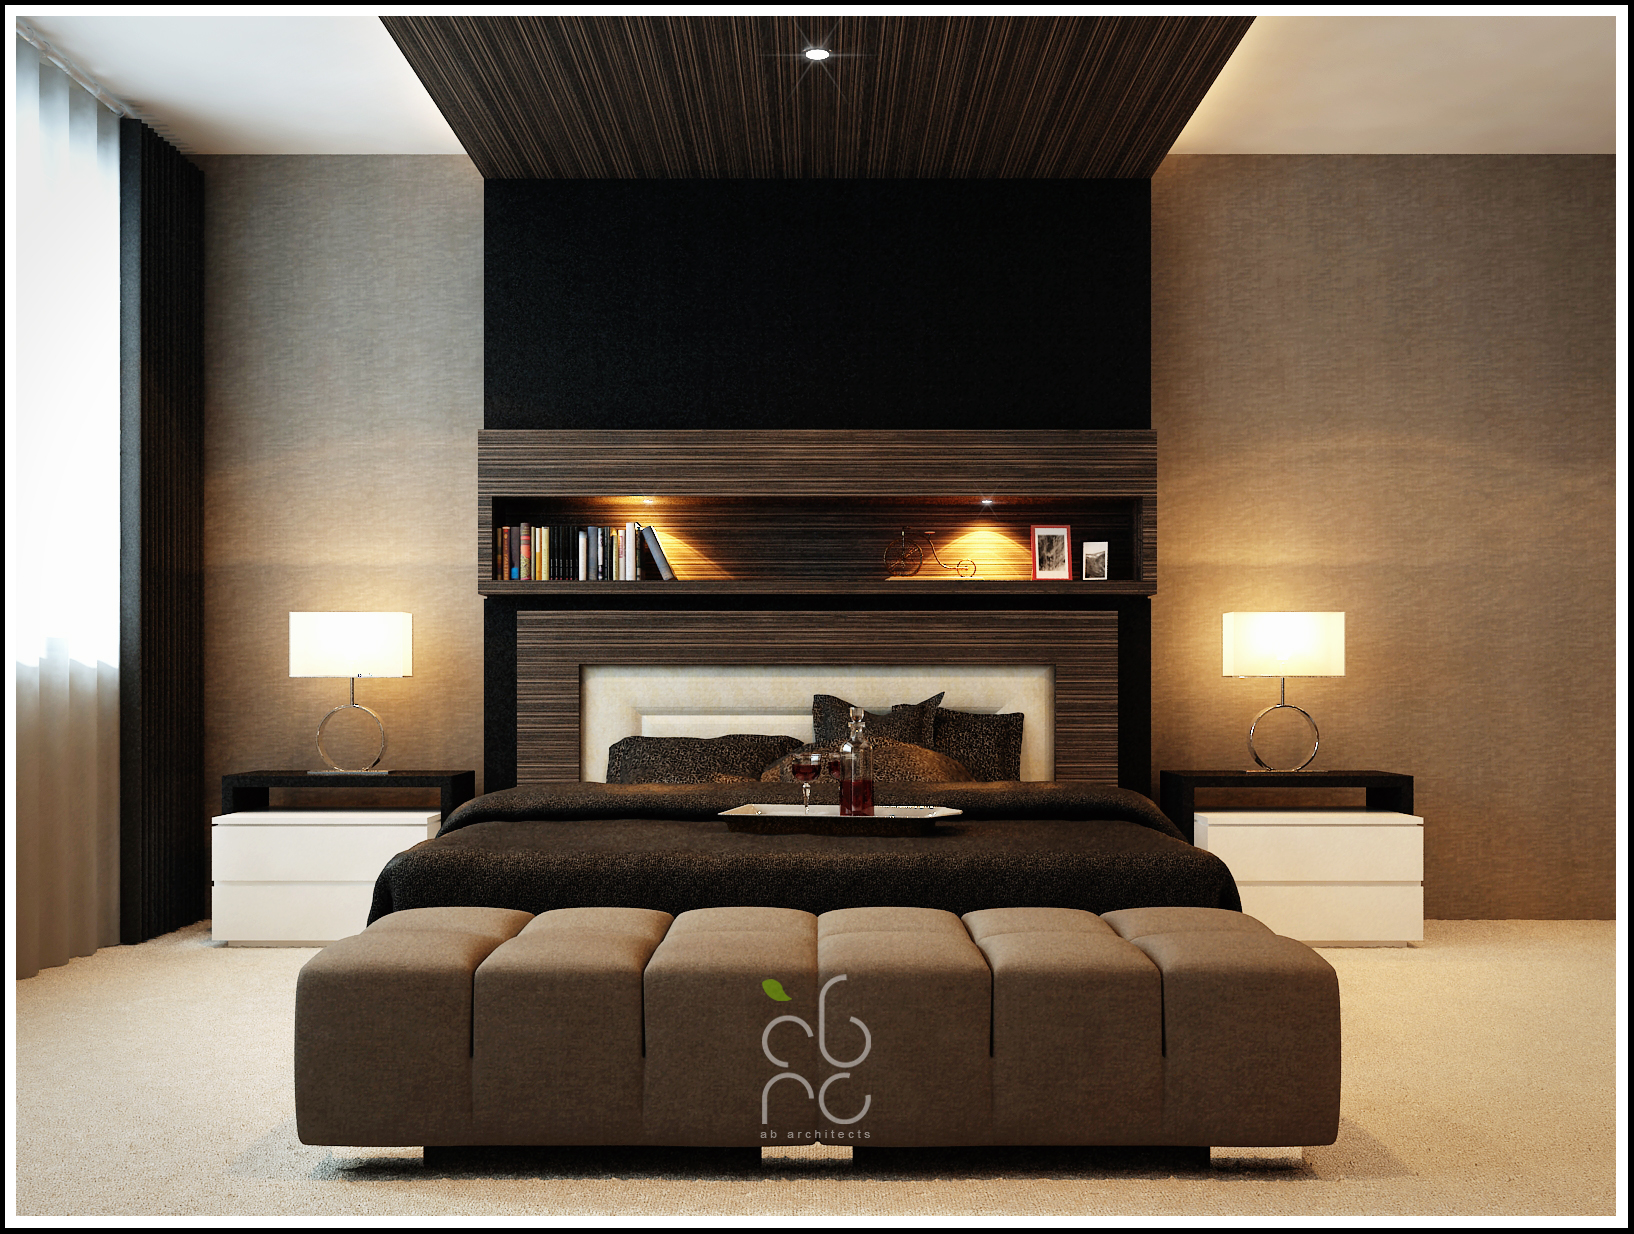 apartment cool awesome decor home designs design the best bedroom room inspiration ideas gallery interior and